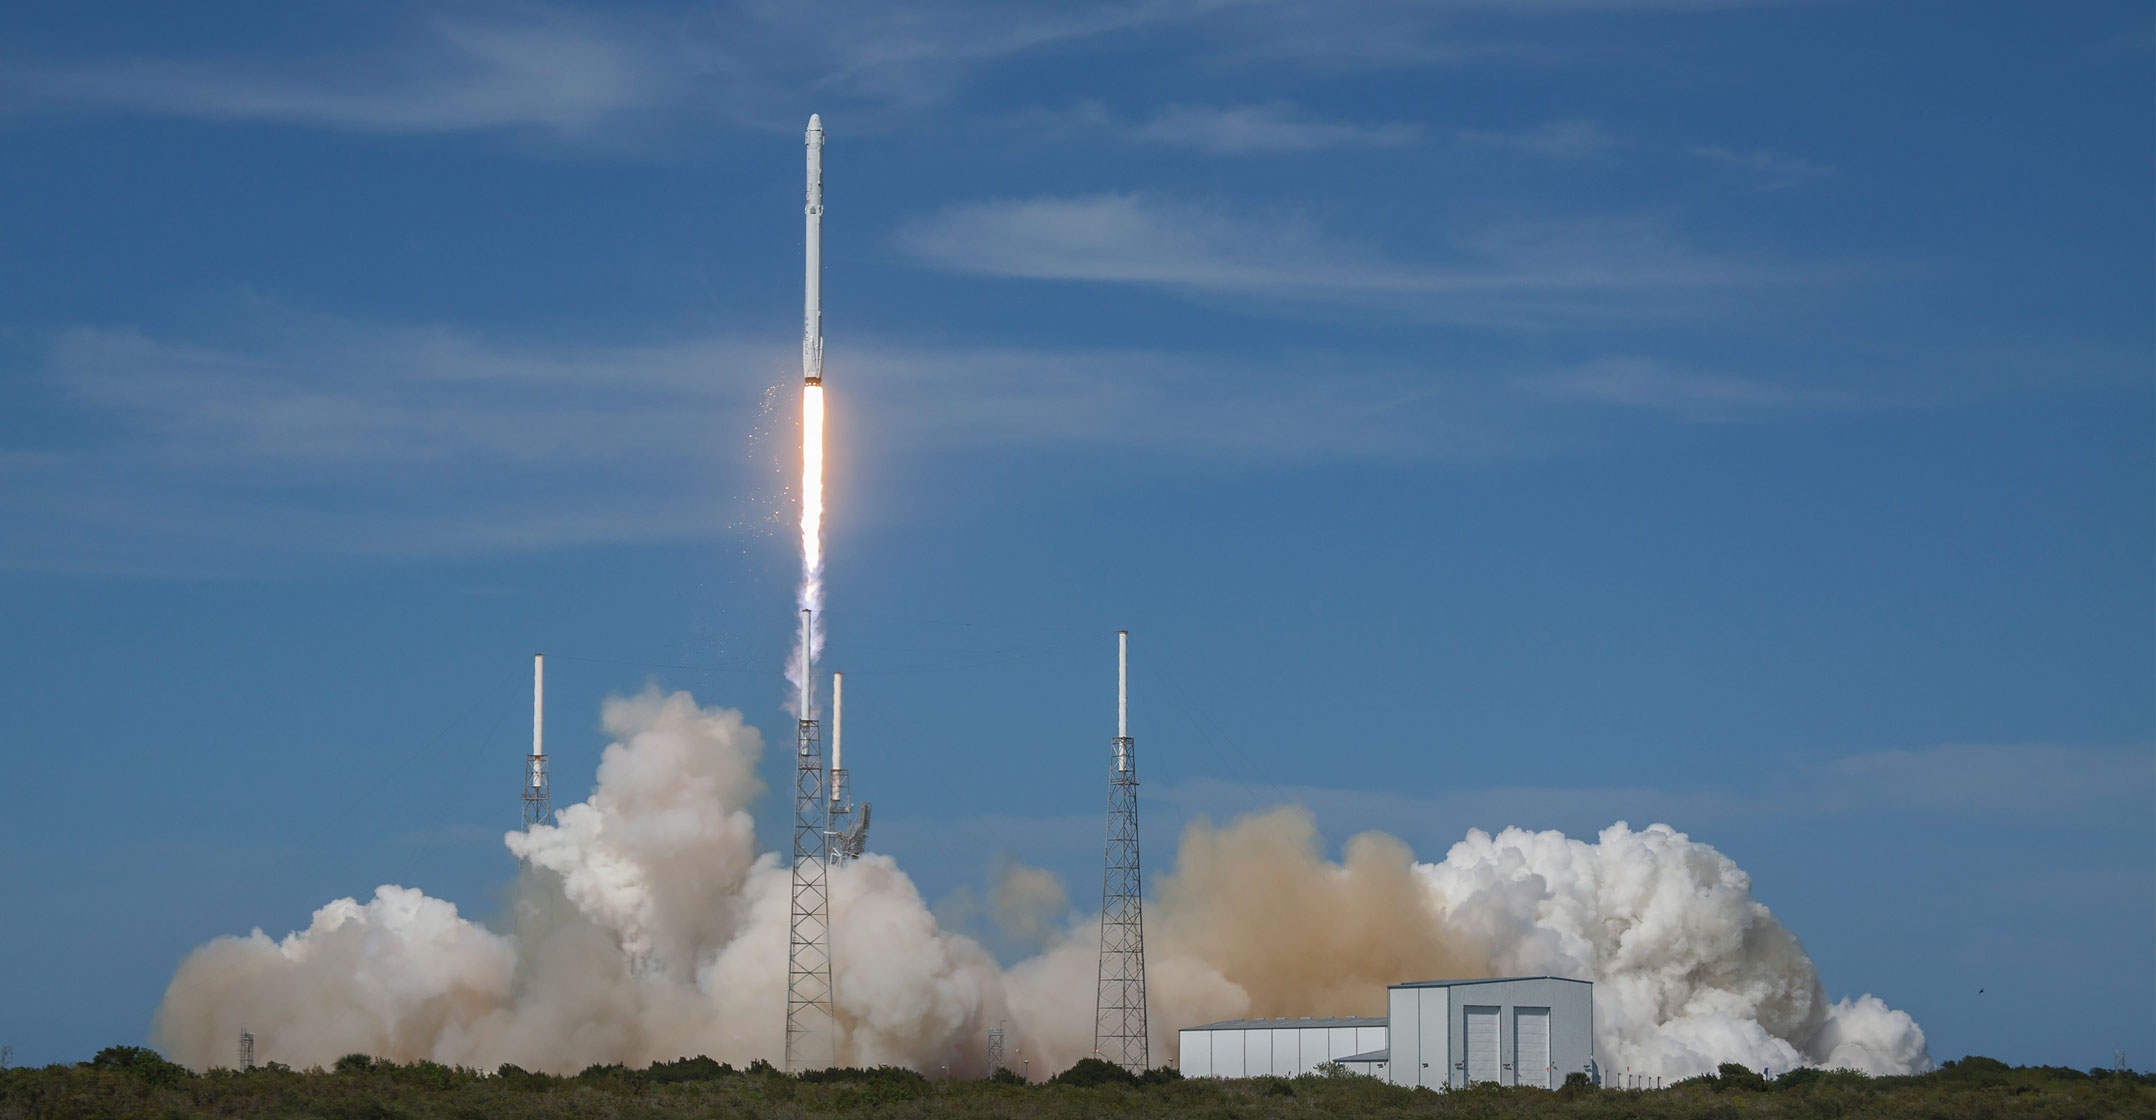 A defining moment: SpaceX will this week launch humans into space - TechCentral